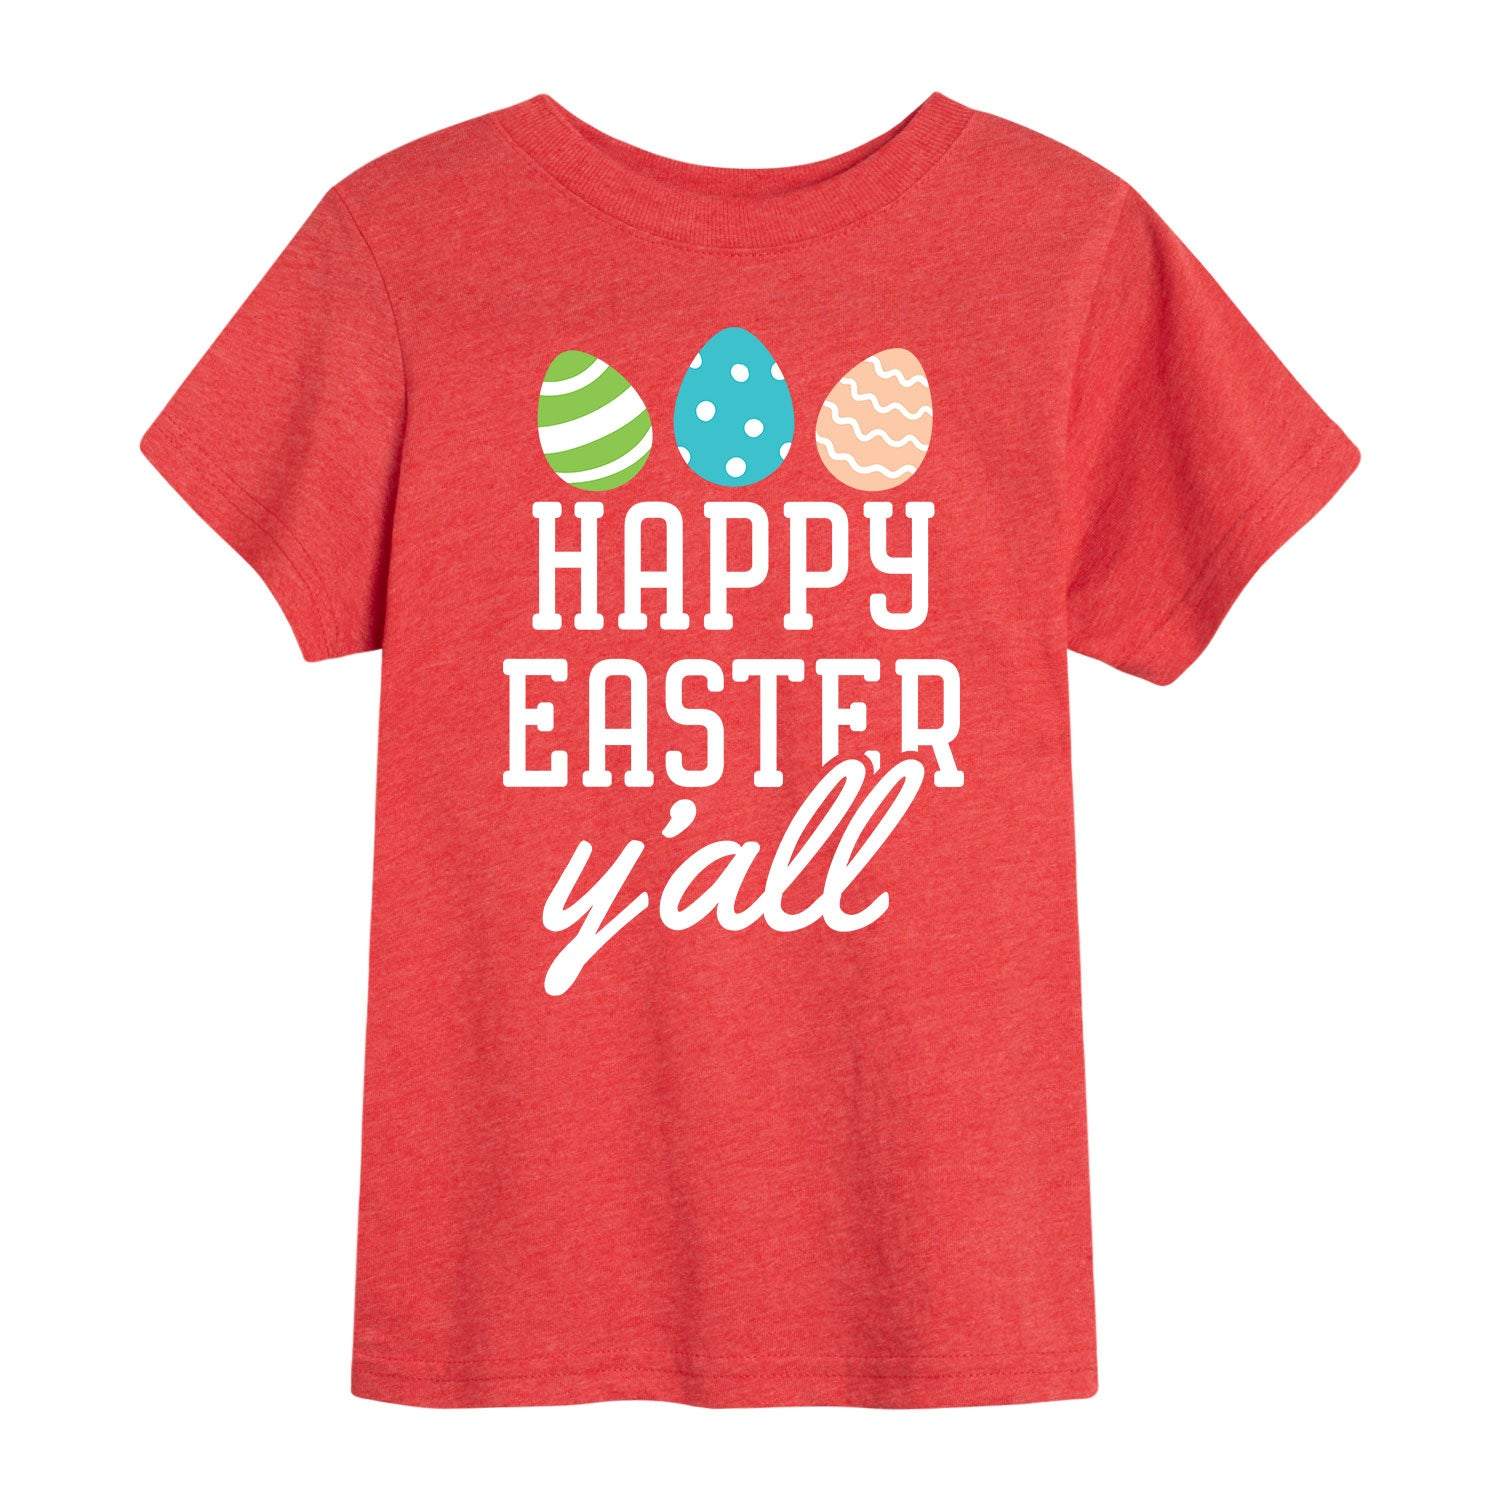 Happy Easter Y'all - Toddler Short Sleeve T-Shirt